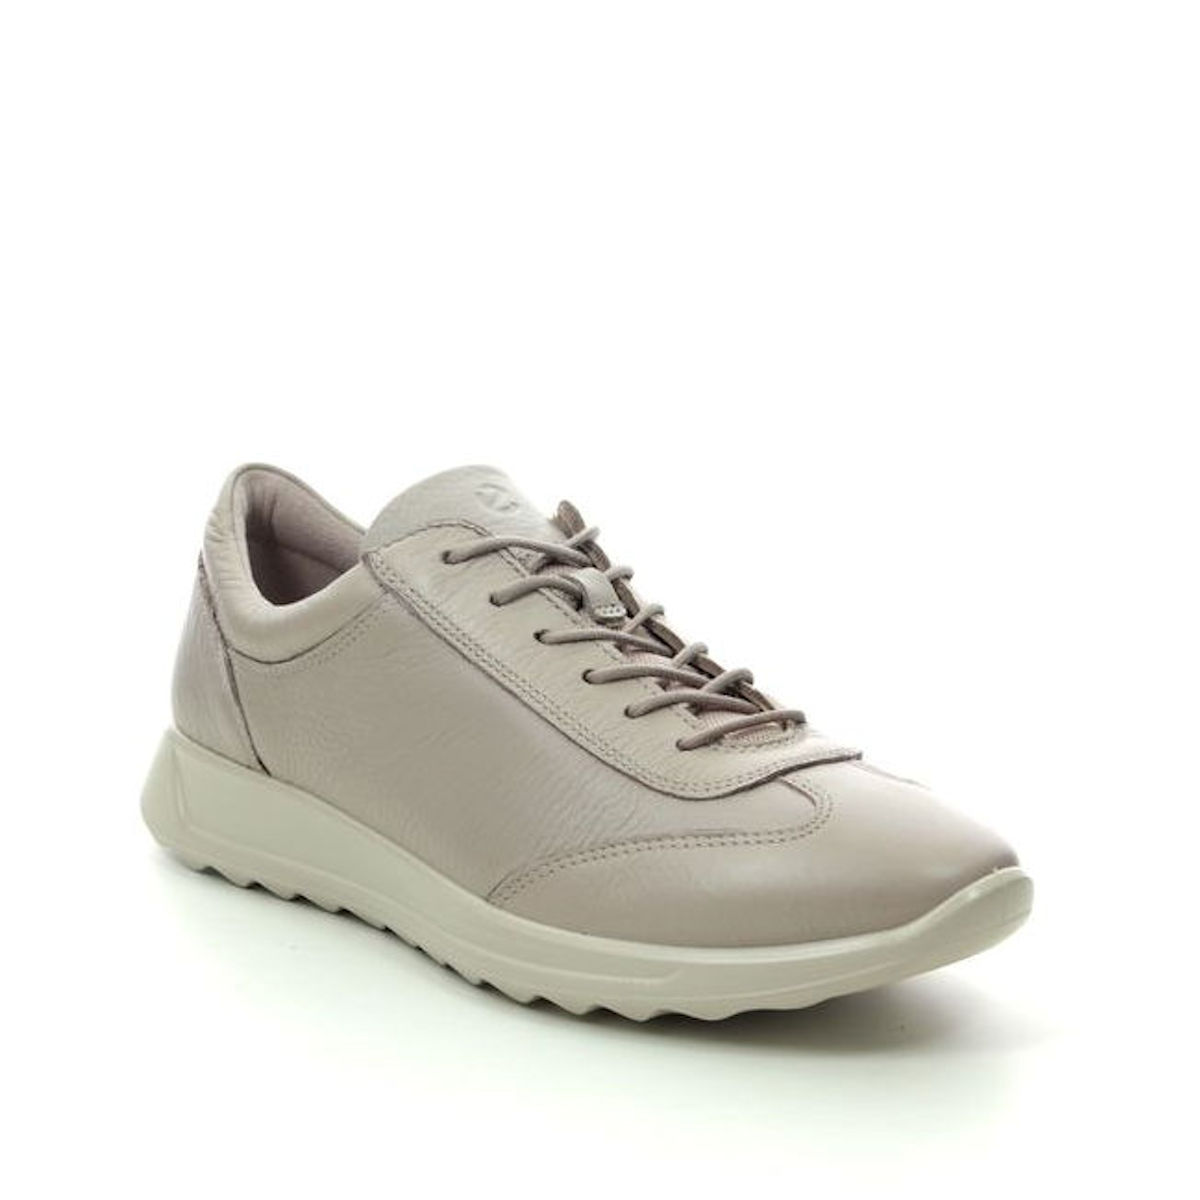 Ecco Trainers Beige Flexure Run